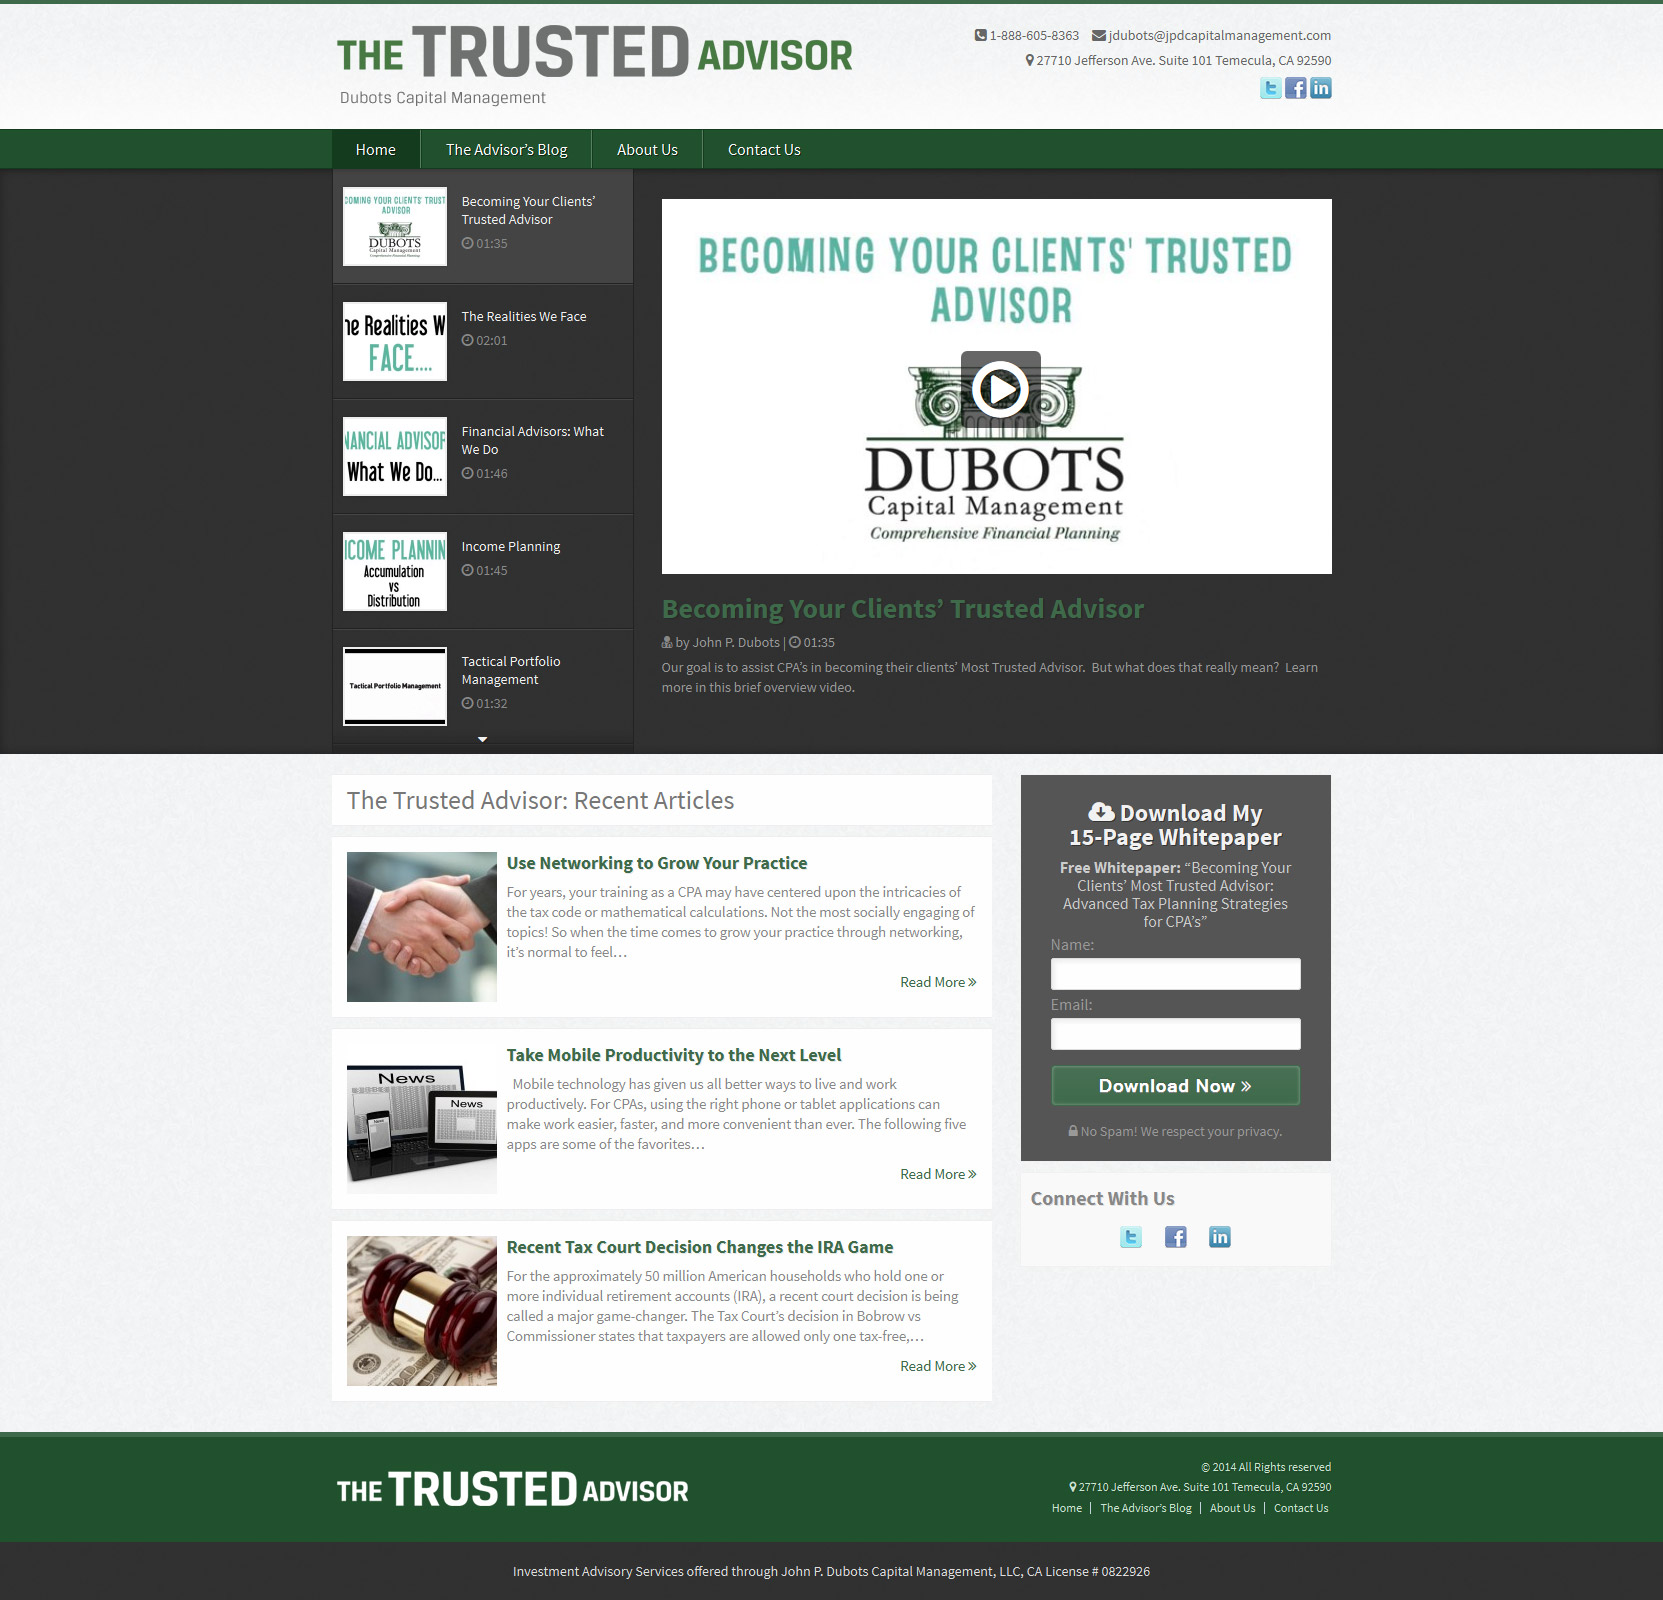 theTrustedAdvisor.us